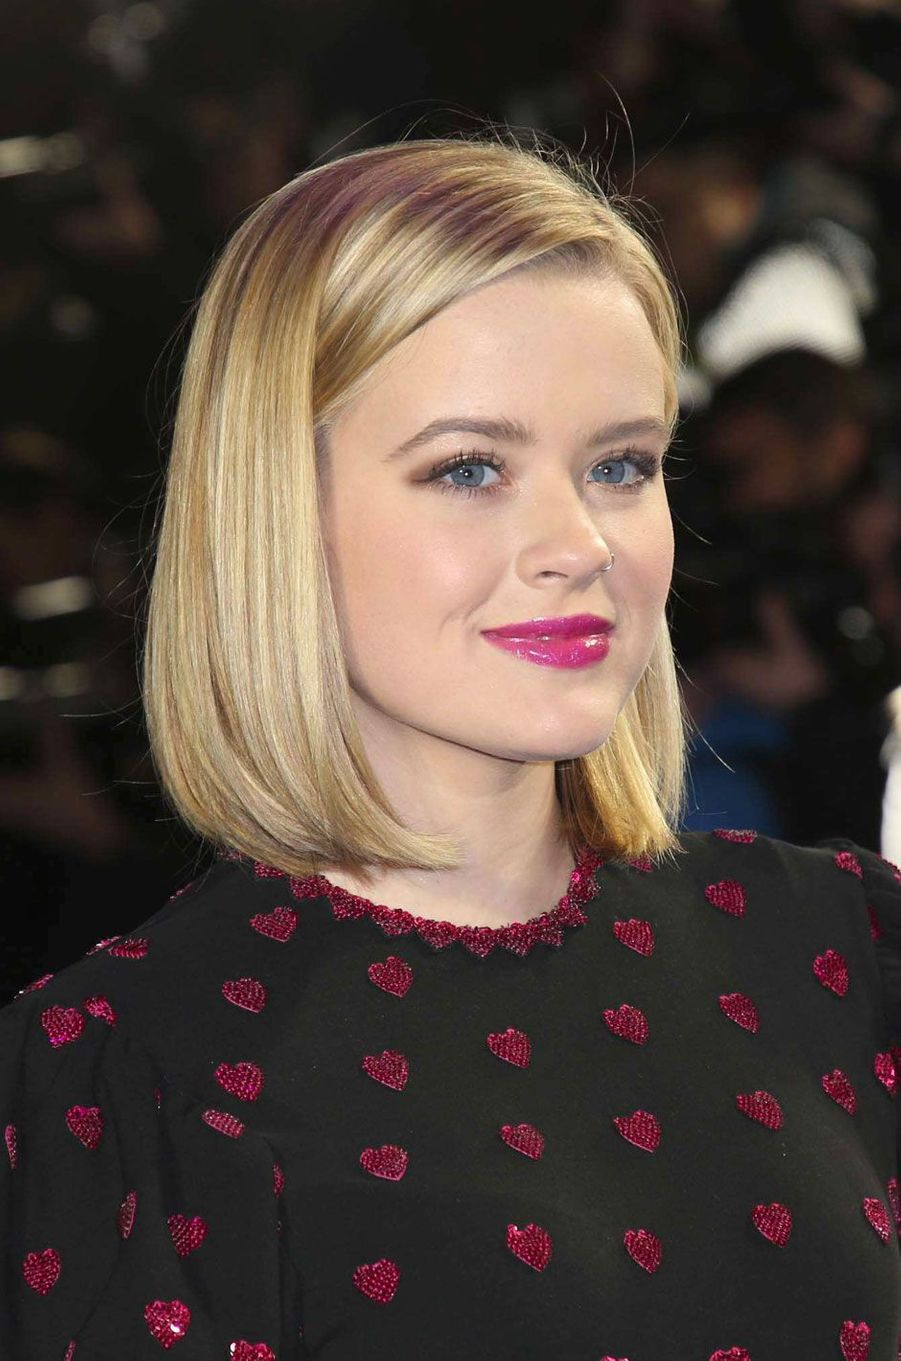 Ava Phillippe le 13 mars 2018 à Londres